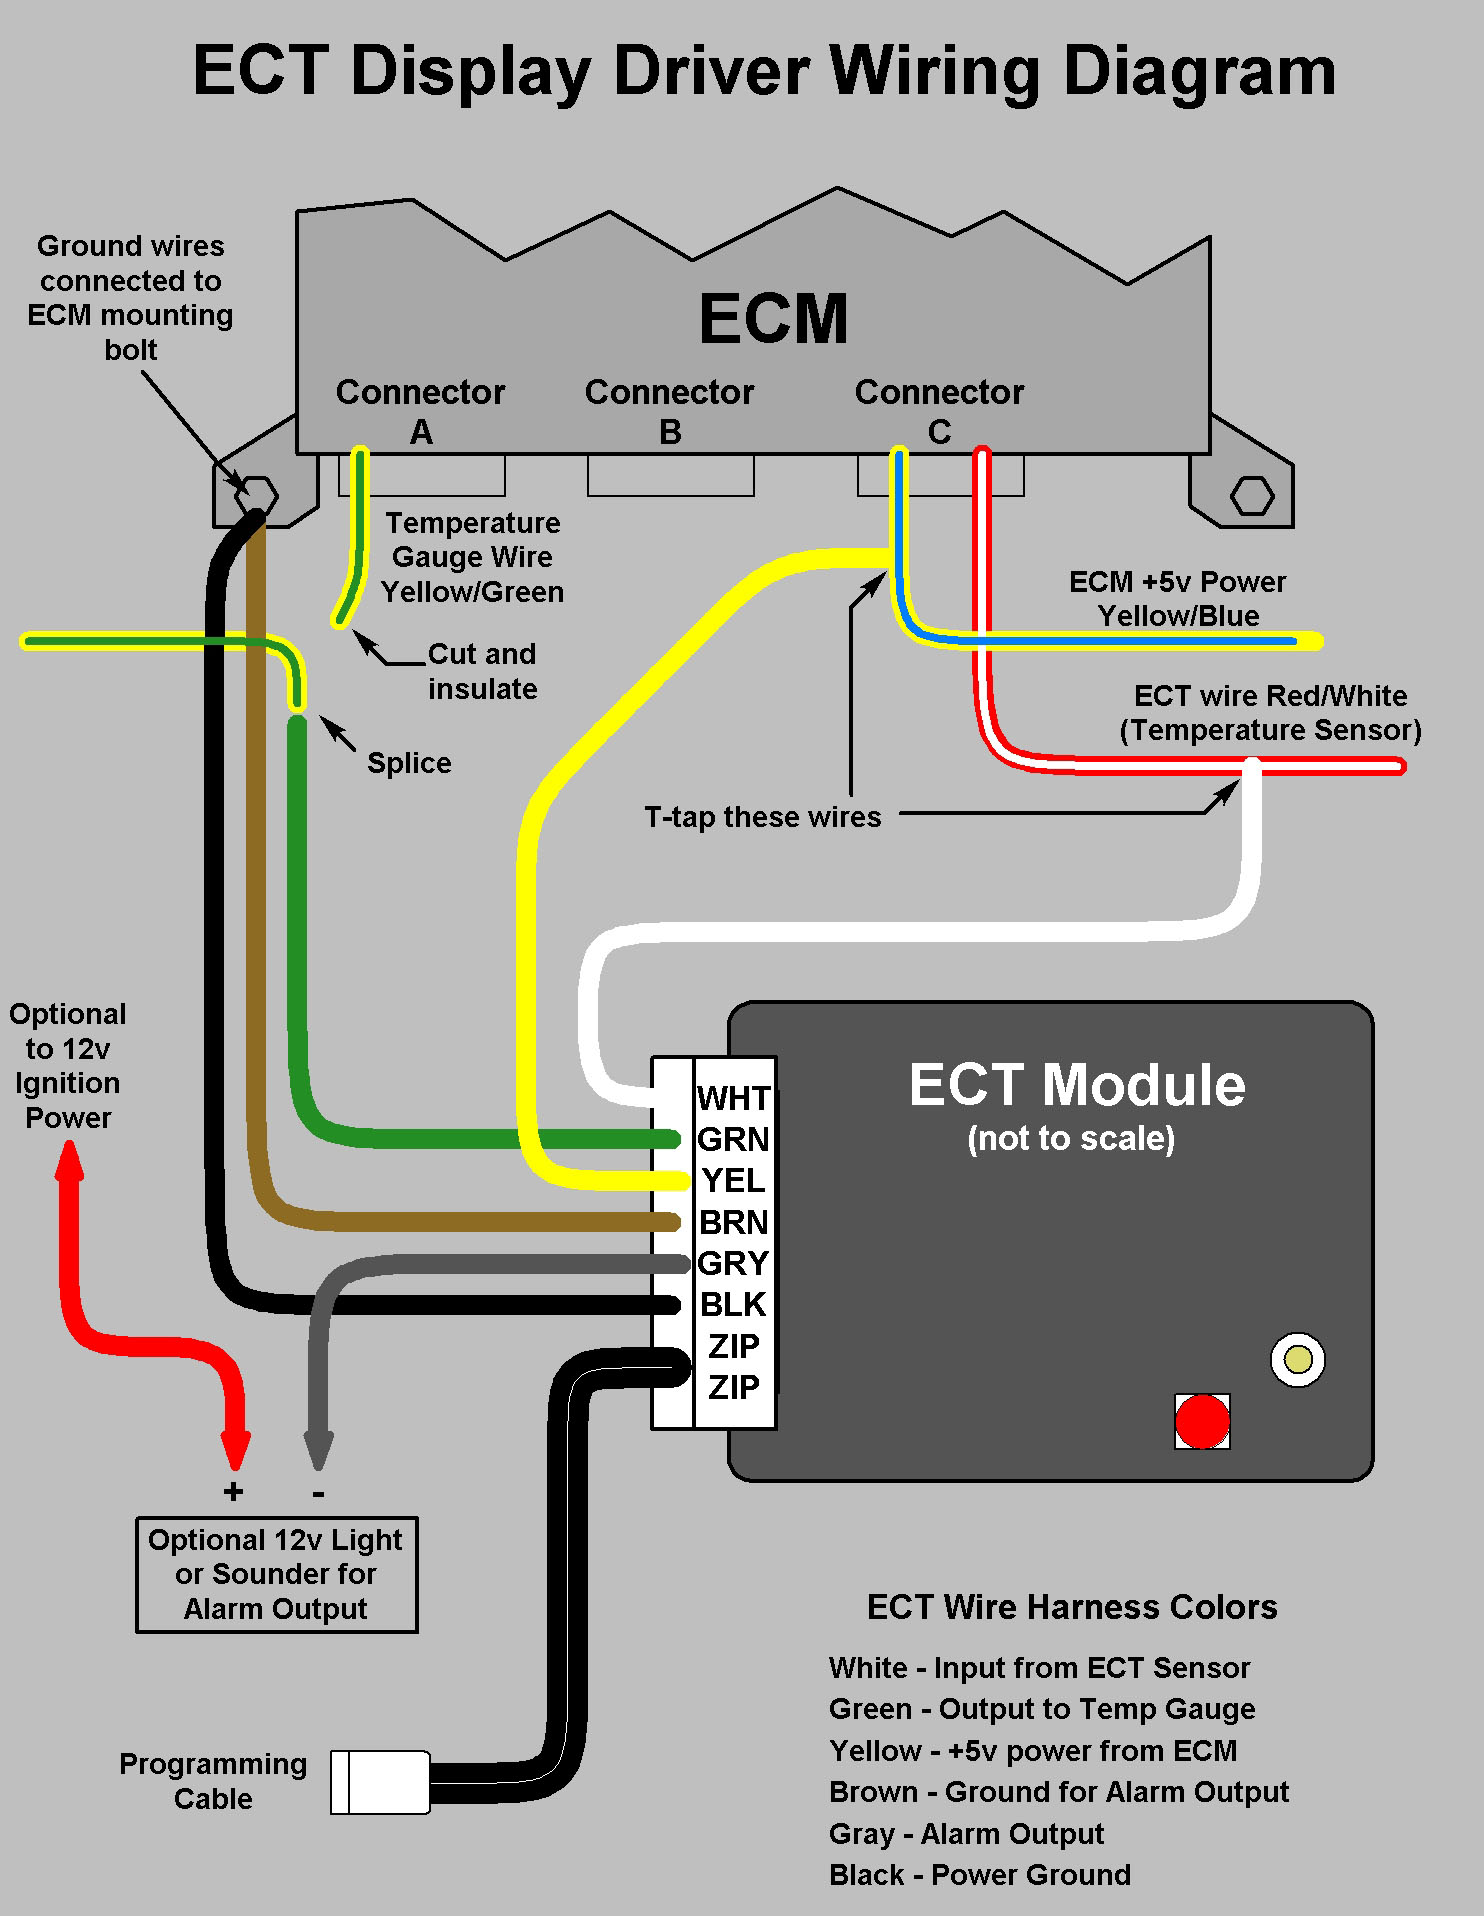 ECT wiring diagram ems wiring diagram medical diagram \u2022 free wiring diagrams life ems 8860 wiring diagram at mifinder.co